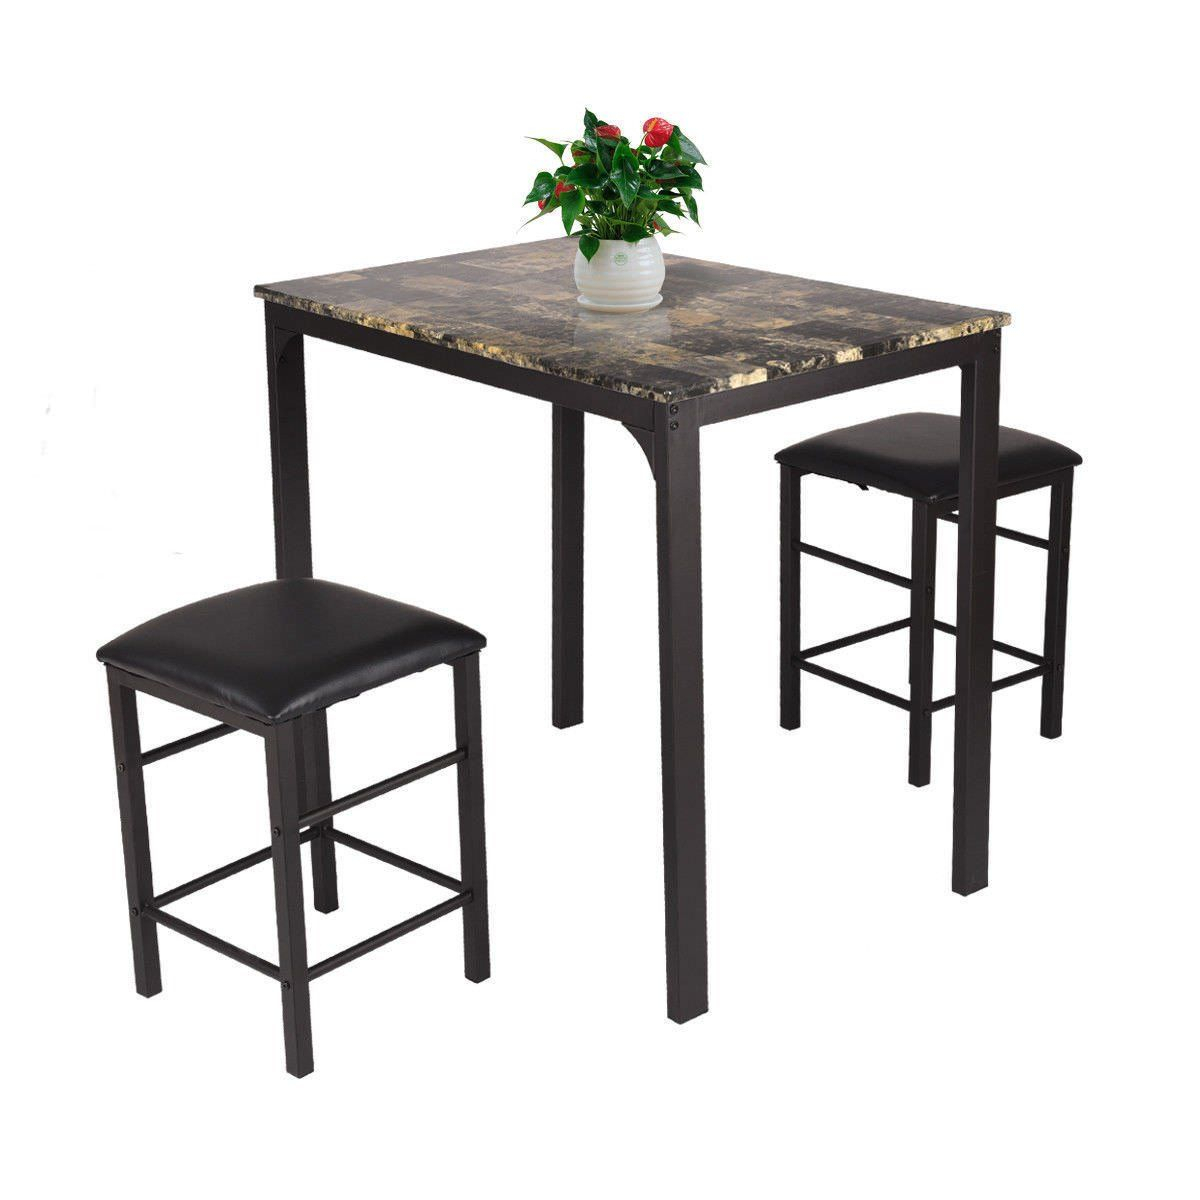 Preferred 5 Piece Percie Industrial Counter Height Dining Set Oak/black In Kerley 4 Piece Dining Sets (#16 of 20)